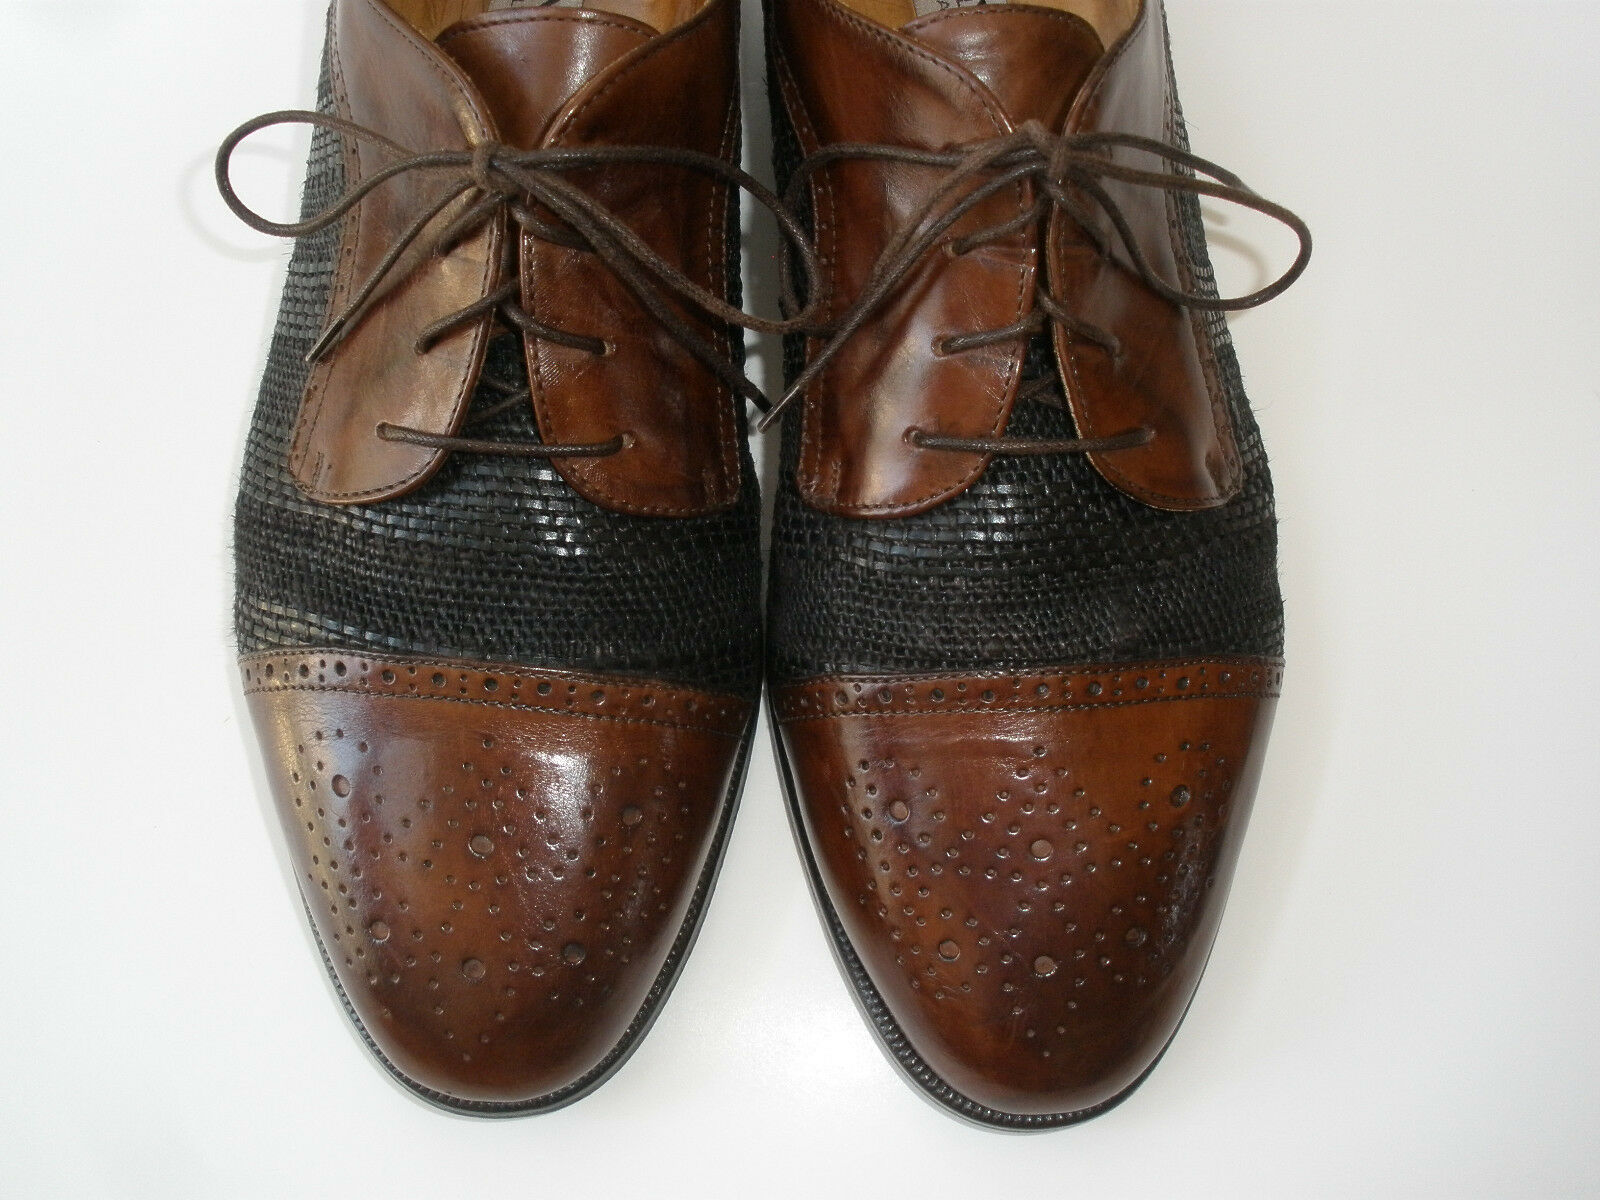 452b1d34955 ... Cole Haan Mens Brown Leather Penny Penny Penny Loafer Slip Apron Toe  Casual Dress Shoes 11M ...